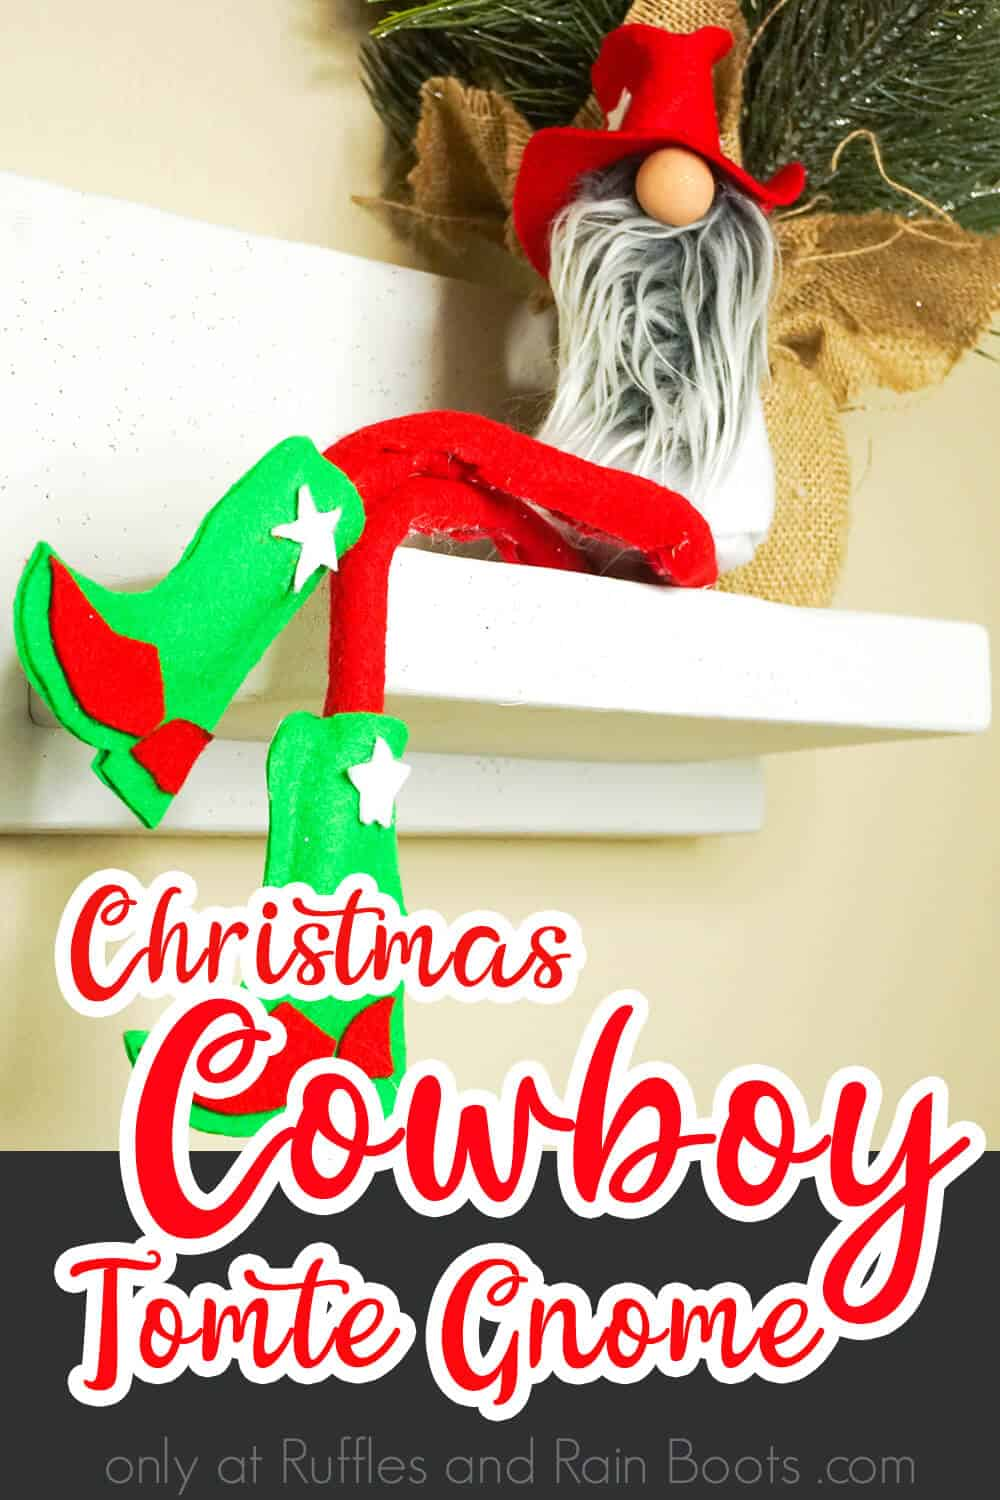 easy cowboy gnome for christmas with text which reads christmas cowboy tomte gnome